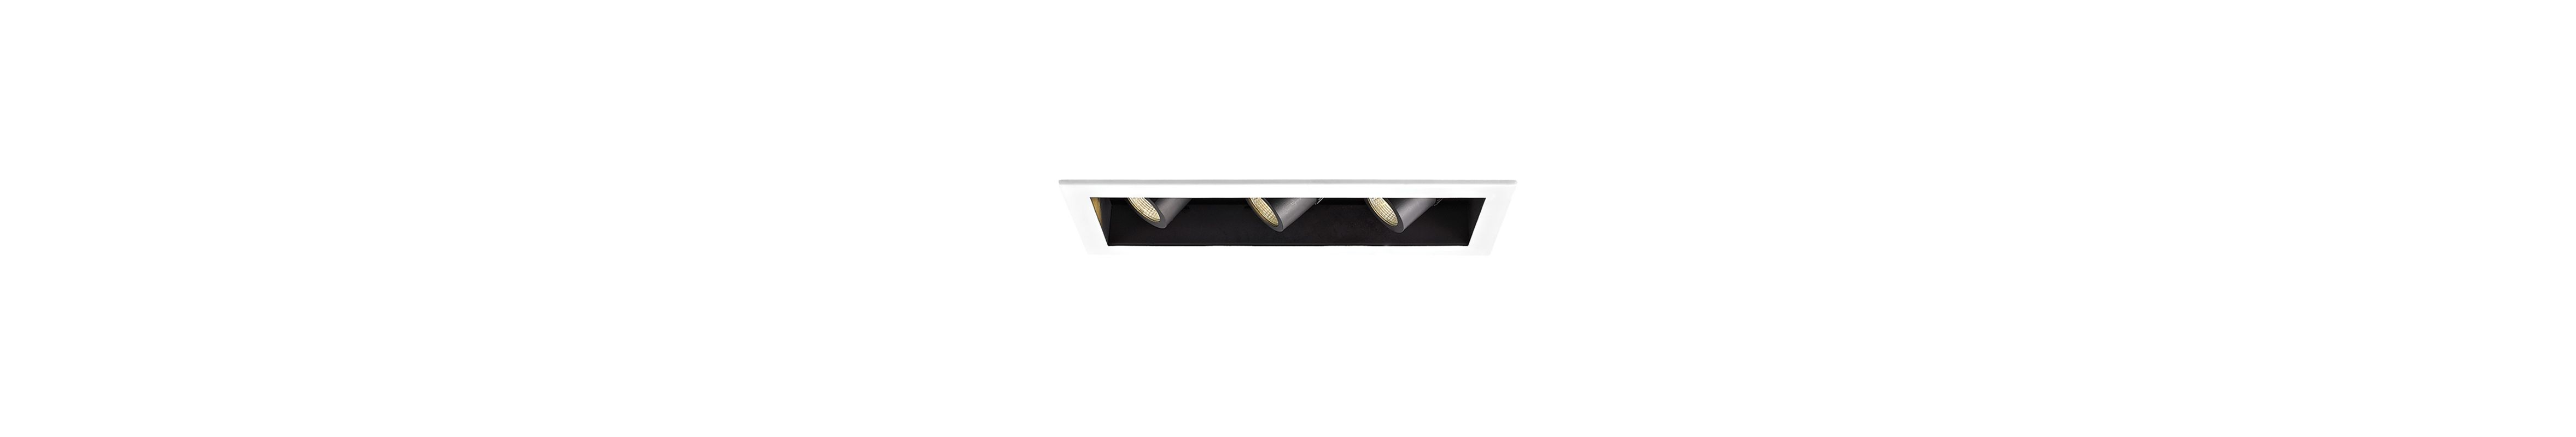 "WAC Lighting MT-4LD316N-S930 4"" Trim 3000K High Output LED Recessed"